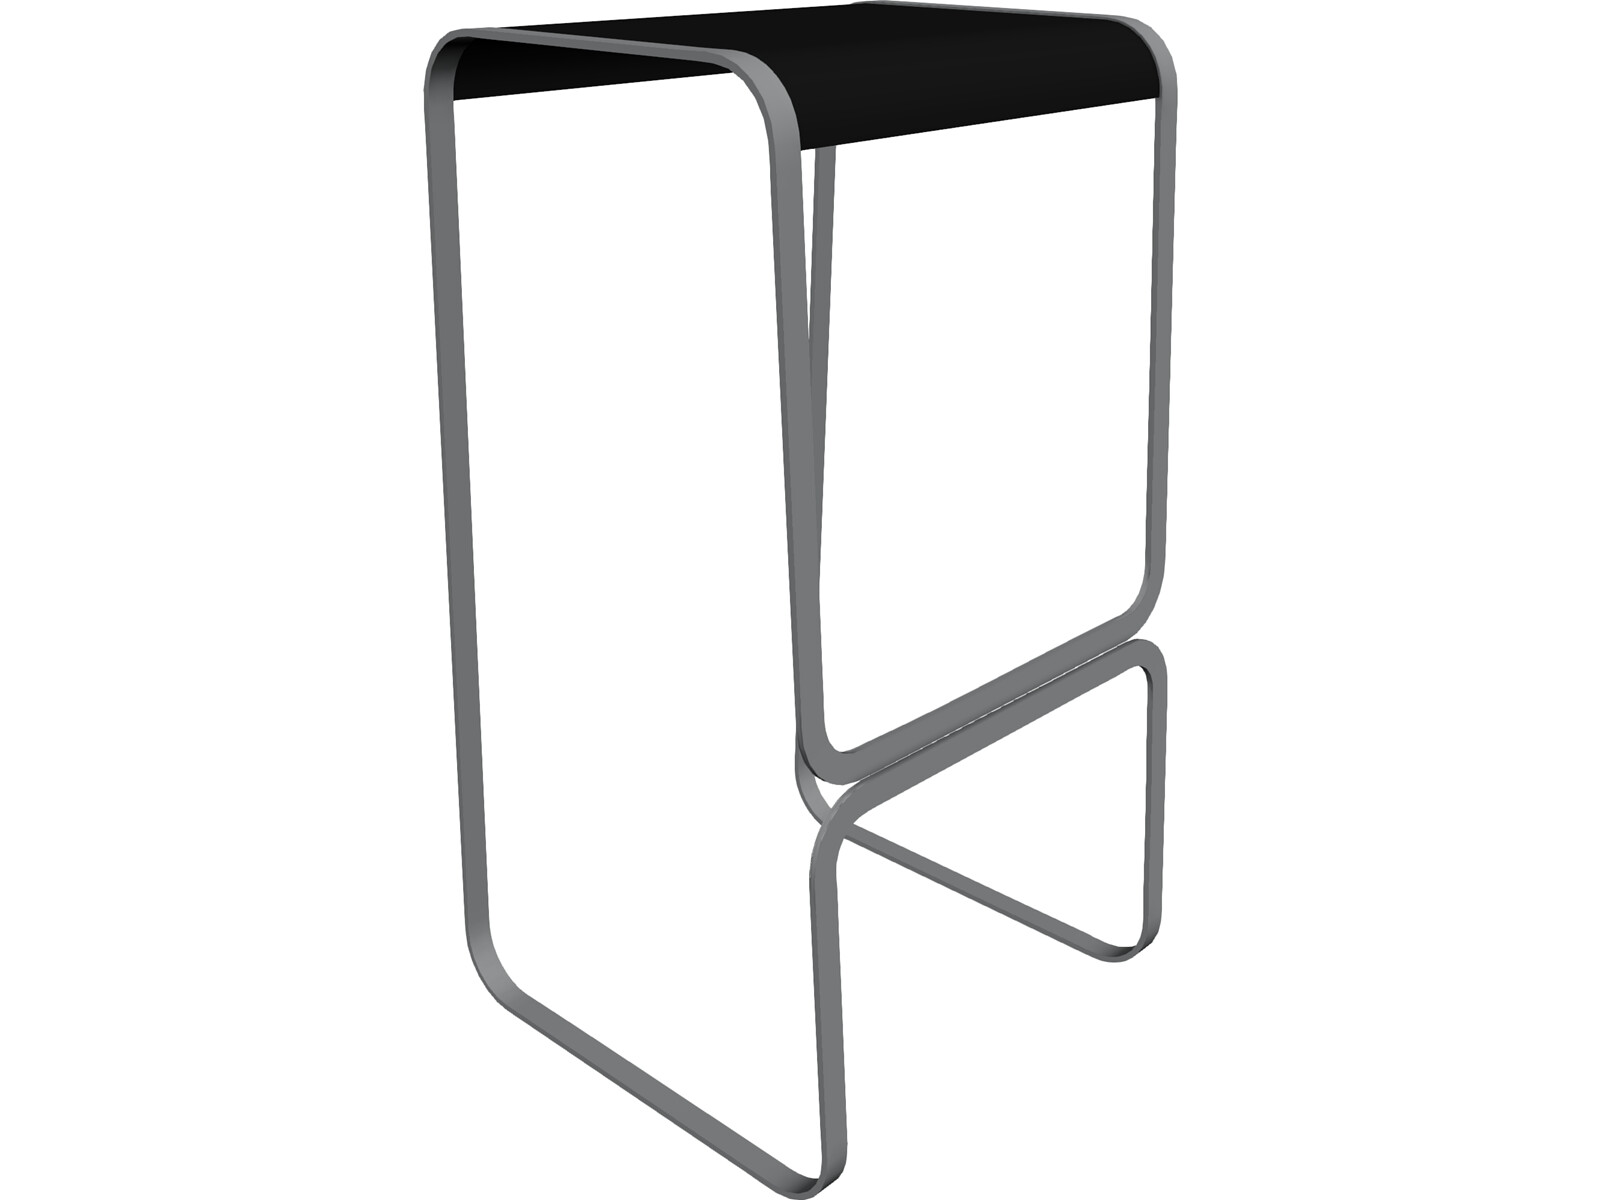 Bar Stool Continuum 3D CAD Model Download 3D CAD Browser : 76146 from www.3dcadbrowser.com size 800 x 600 jpeg 24kB